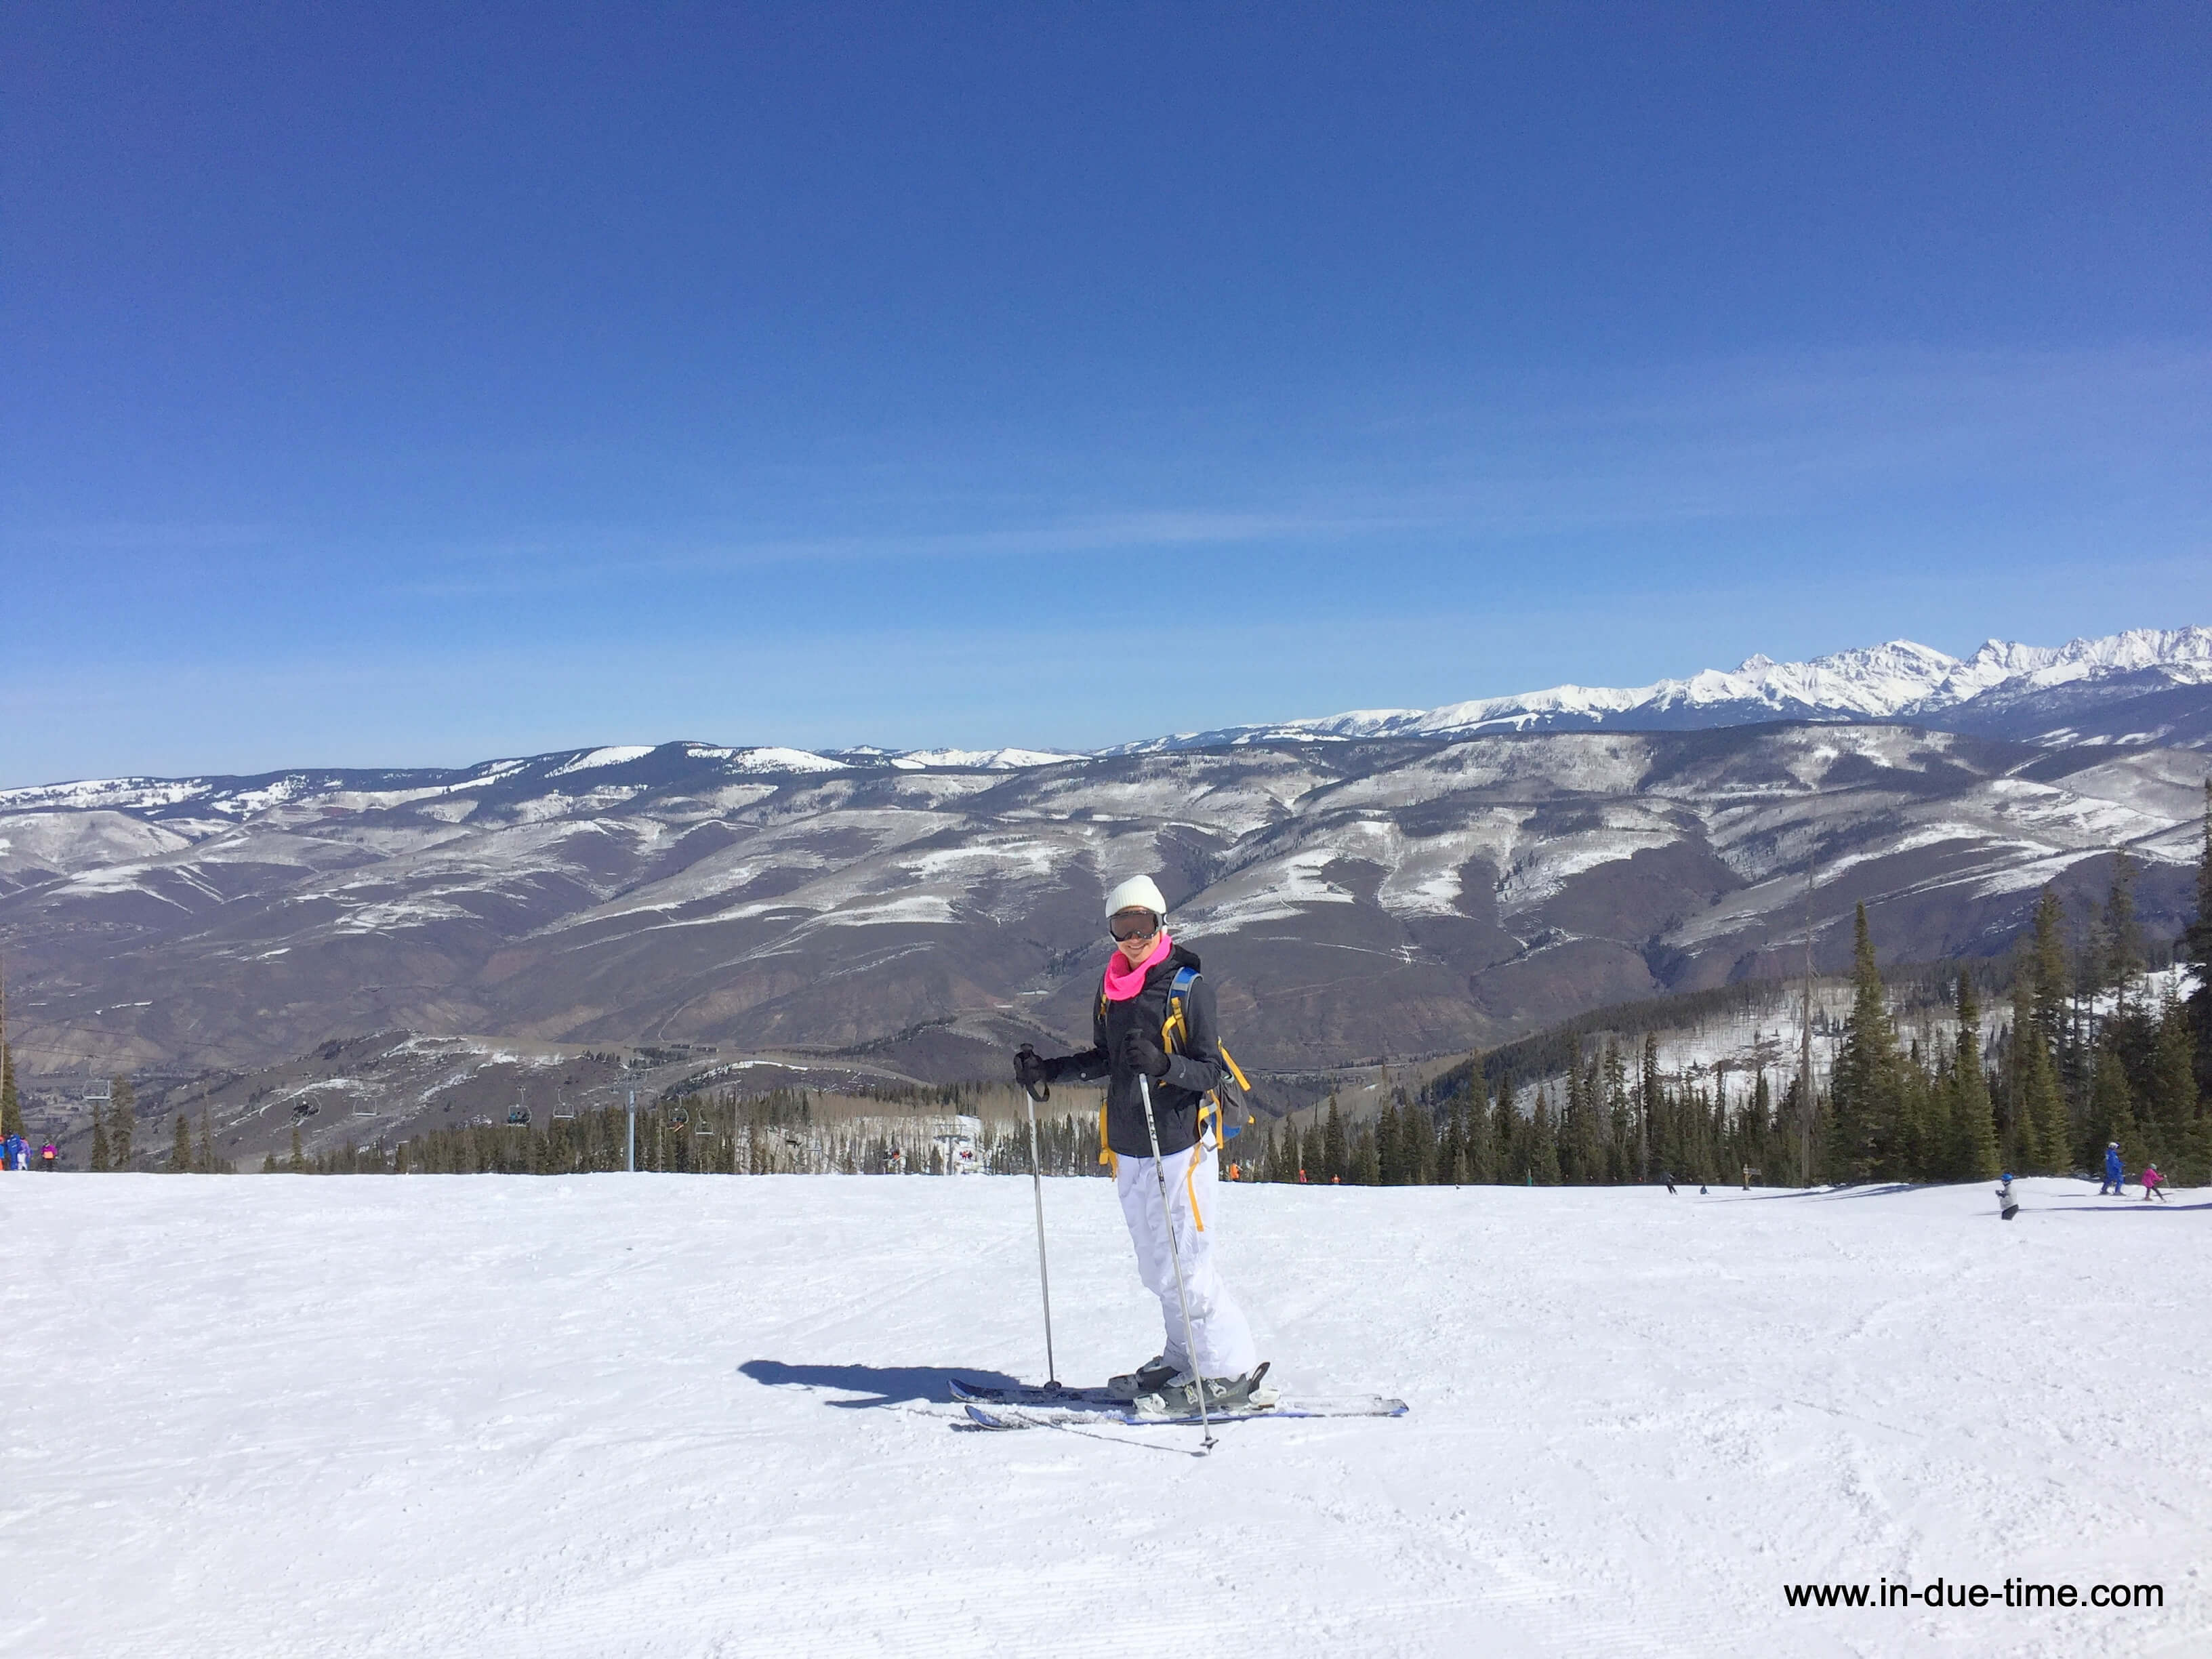 Colorado Ski Date - In Due Time Blog